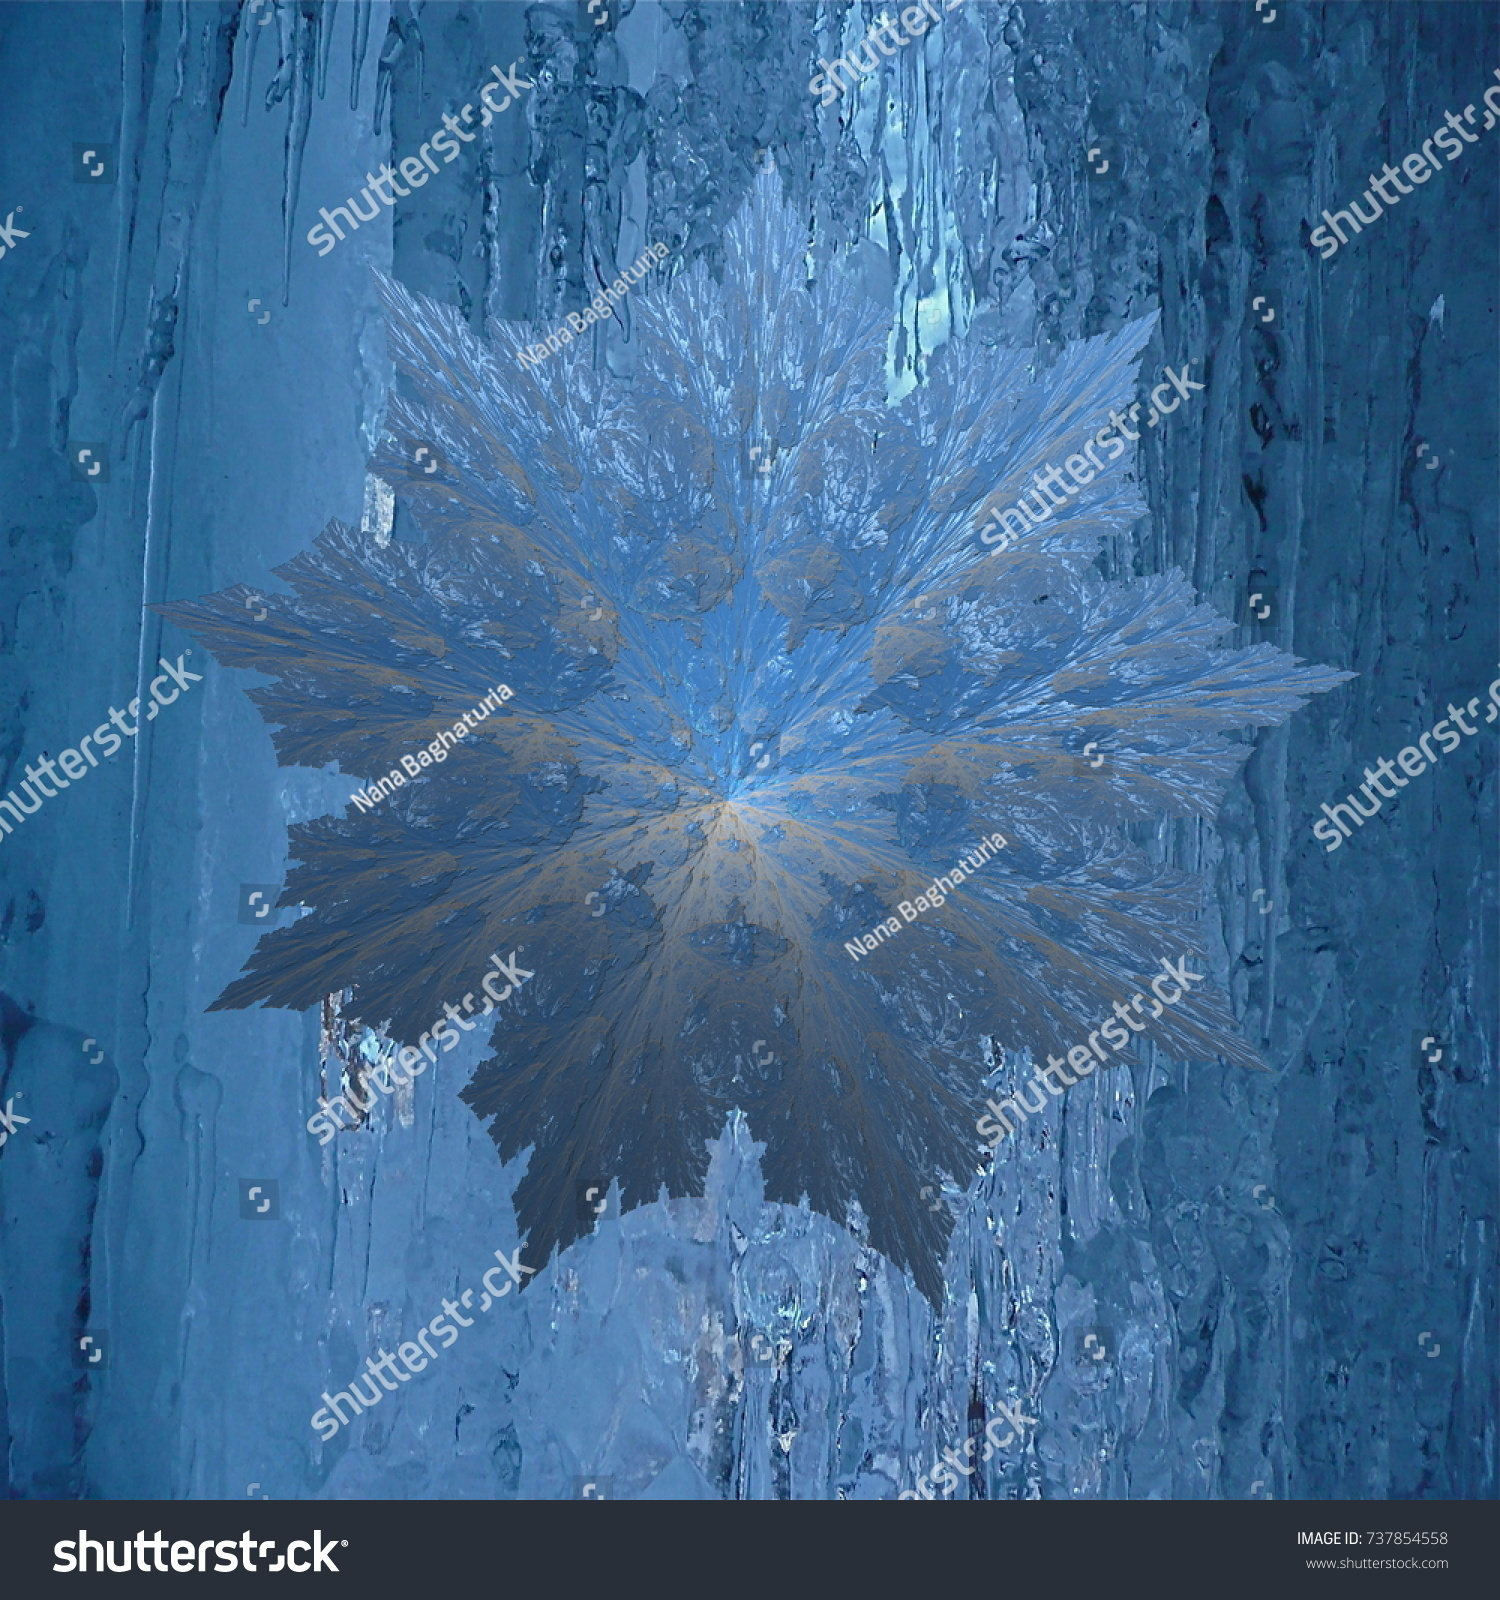 Composition Book Cover Background ~ Snowflake dimensional abstract composition background stock